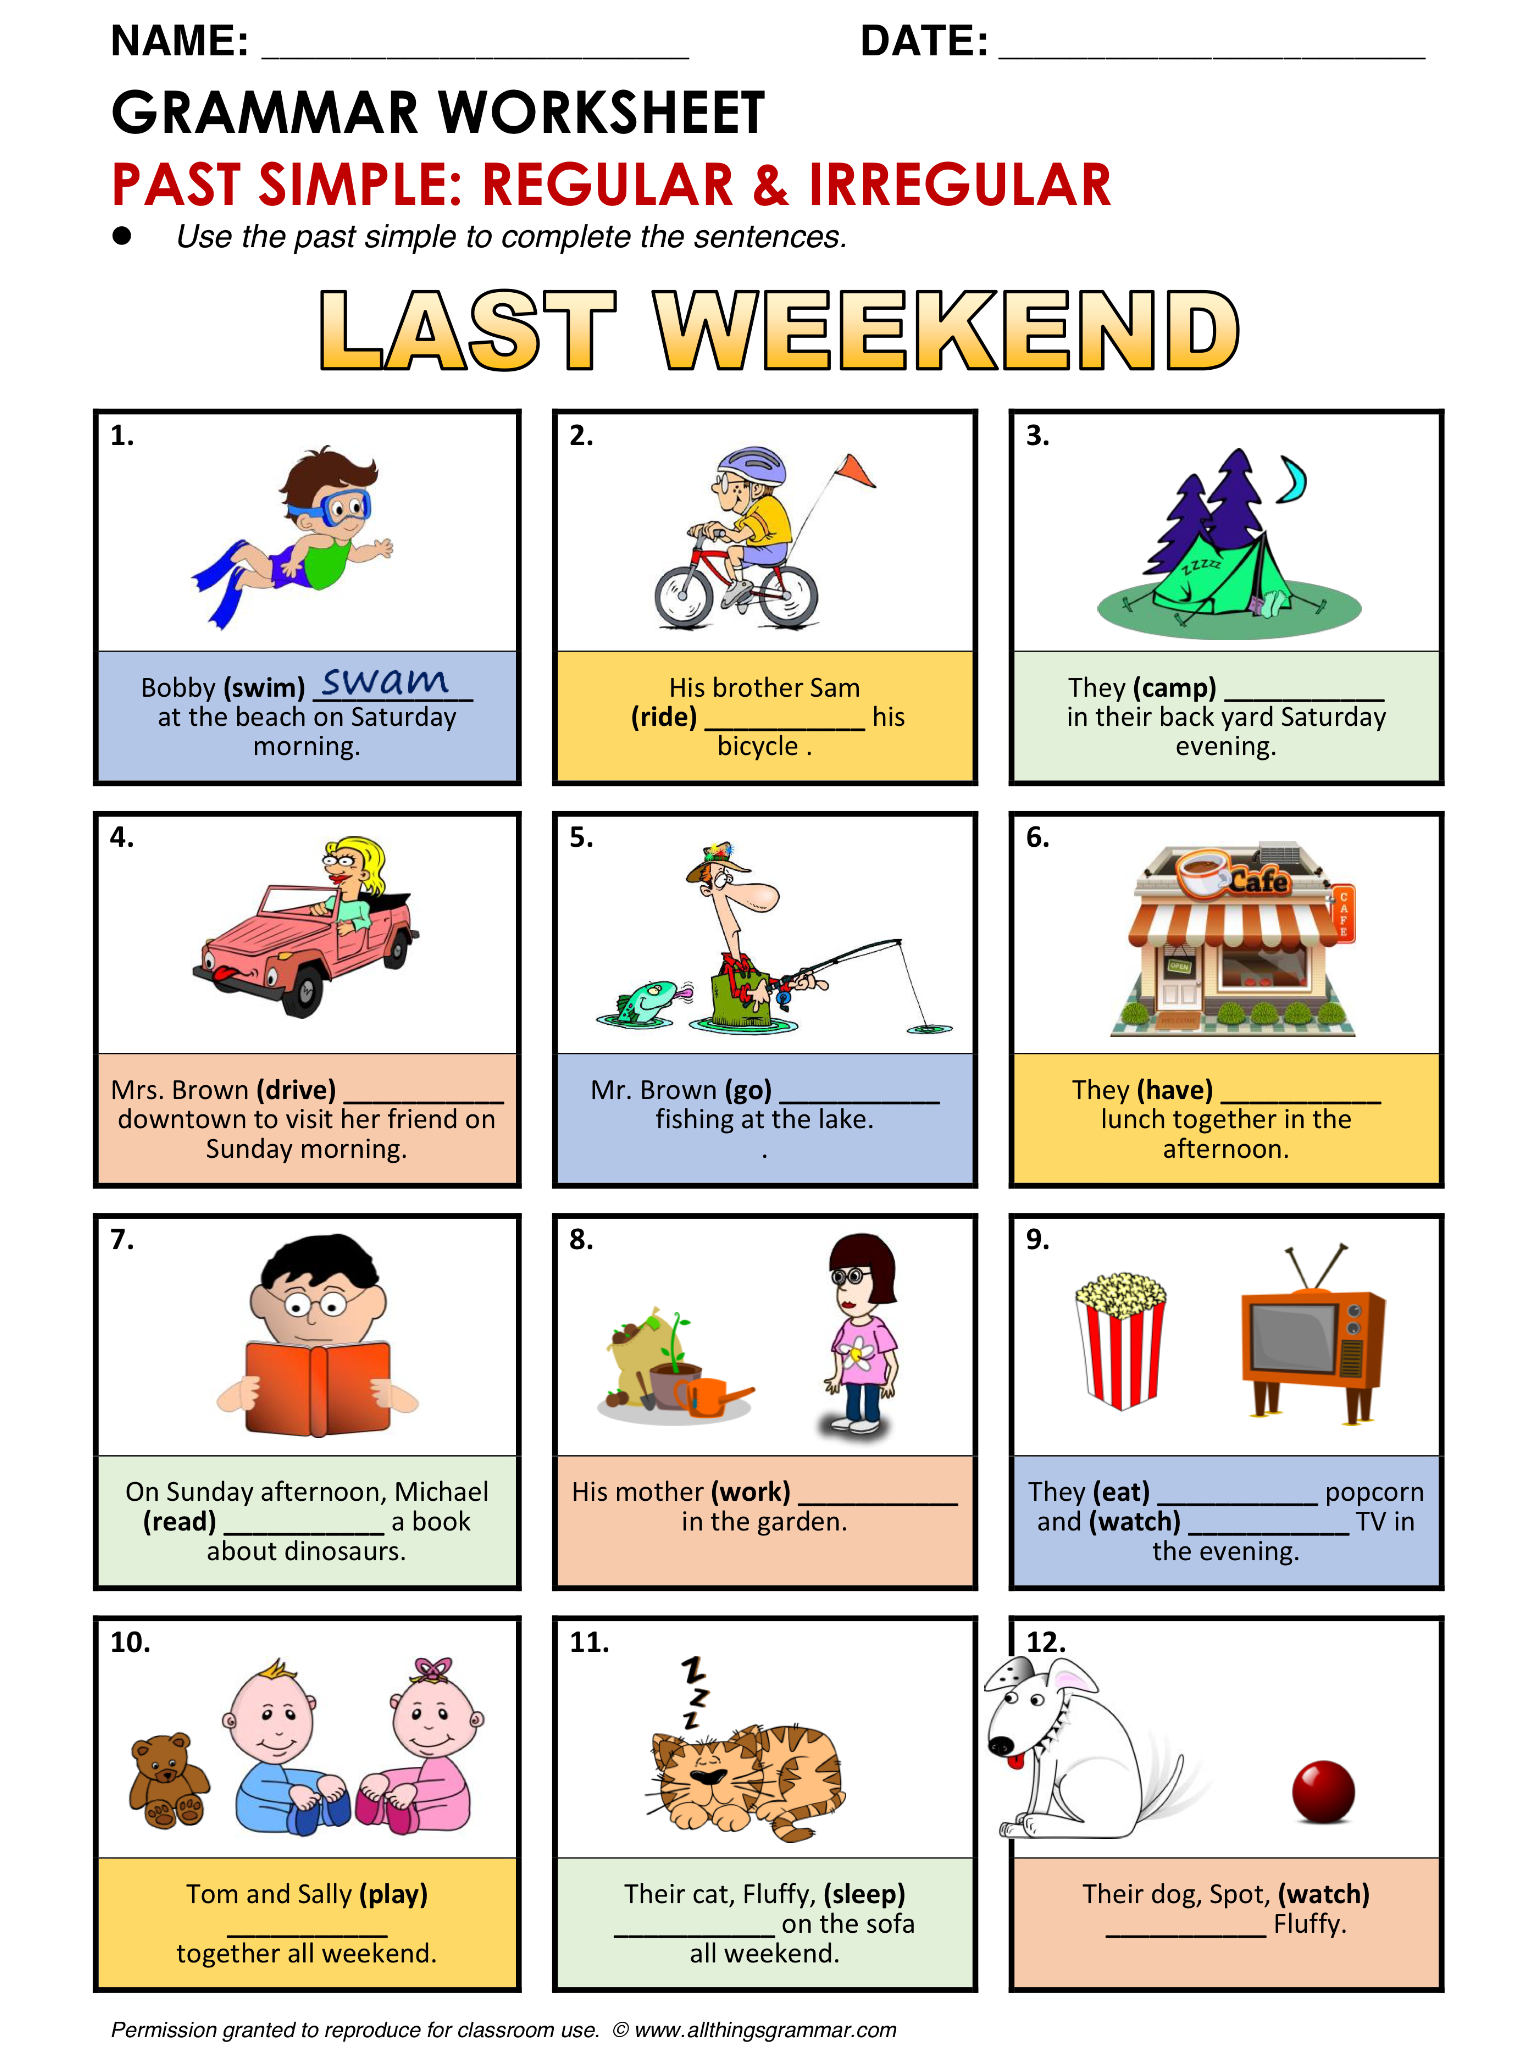 English Grammar Worksheet Past Simple Regular